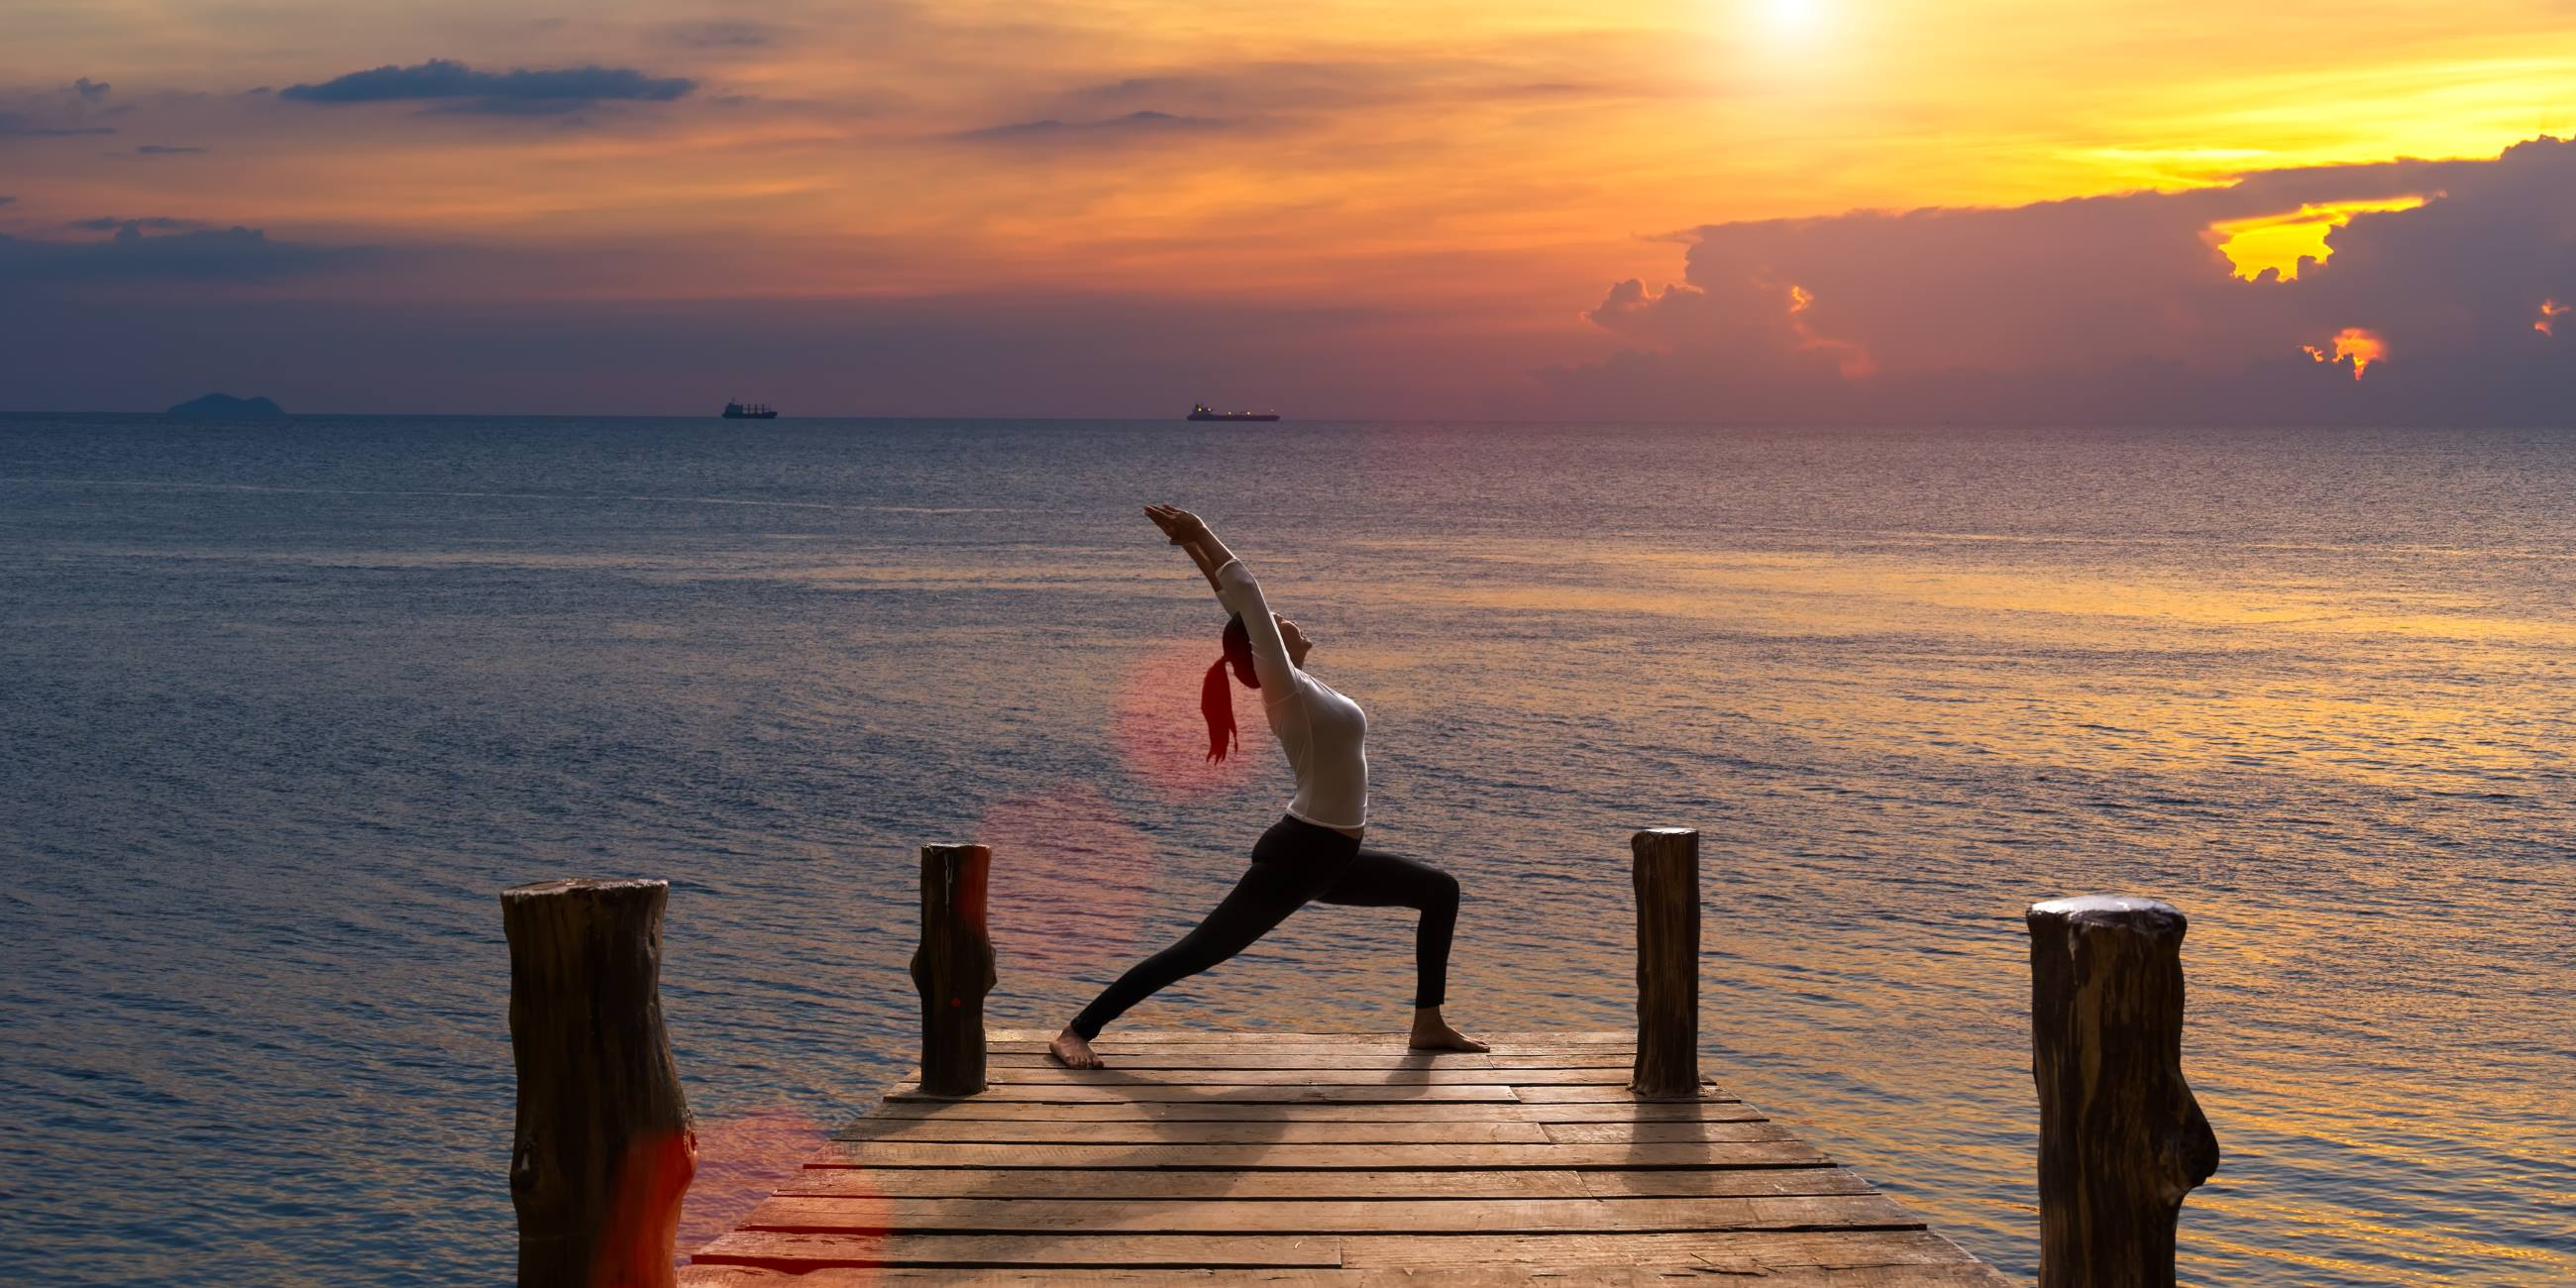 Meditation-girl-on-the-sea-during-sunset-on-the-wood-the-bridge-Yoga-silhouette-Fitness-and-healthy-lifestyle-mental-health